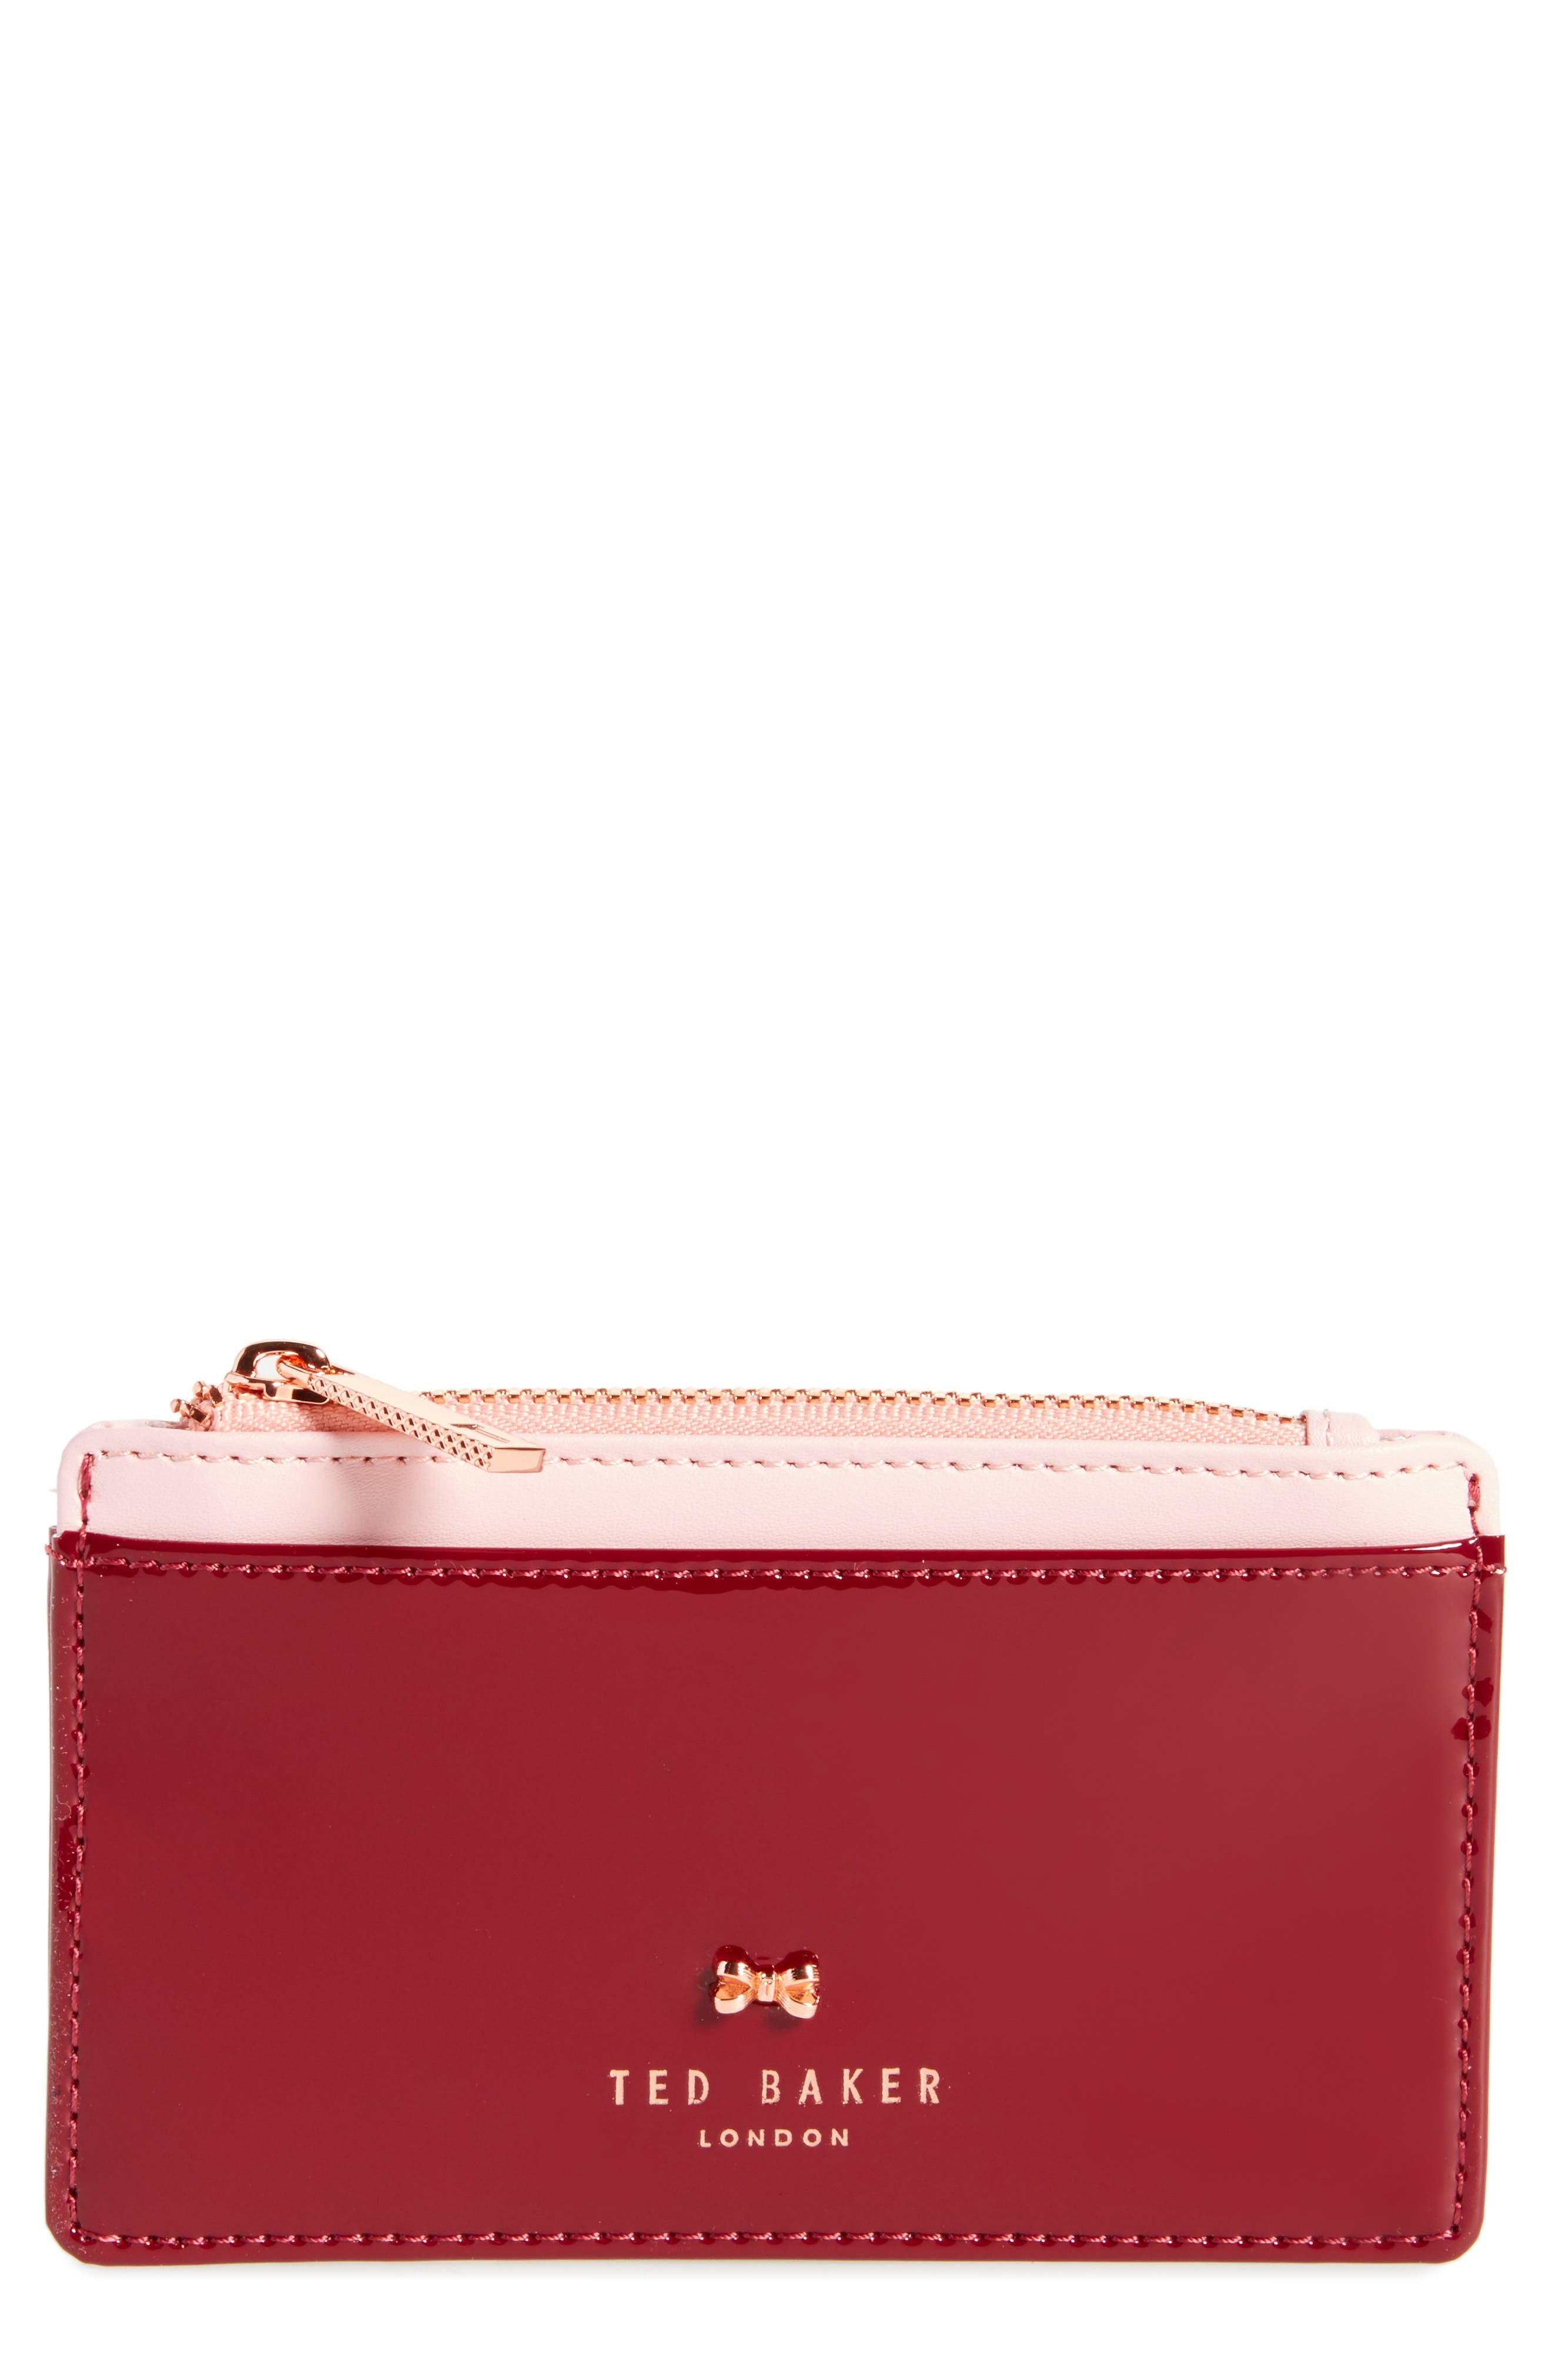 Ted Baker London Avens Top Zip Leather Card Case